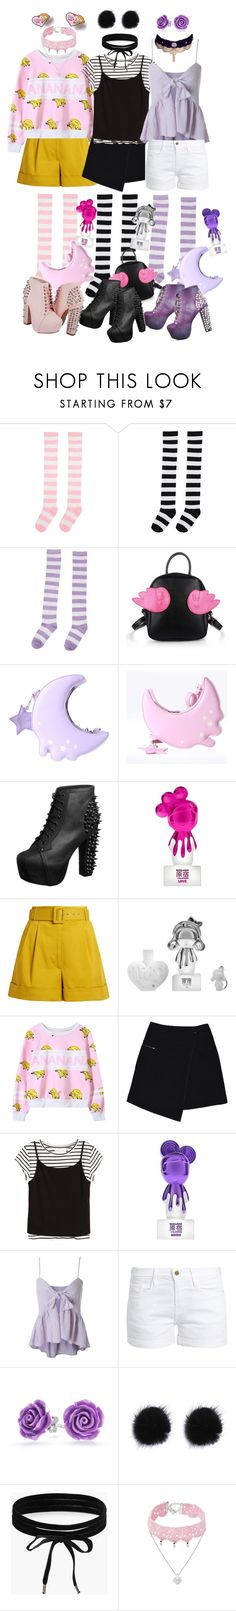 """""""Harajuku pop"""" by neon-life ❤ liked on Polyvore featuring Jeffrey Campbell, Harajuku Lovers, Isa Arfen, MARC CAIN, Frame, Bling Jewelry, Boohoo, Design Lab, Color and harajuku"""